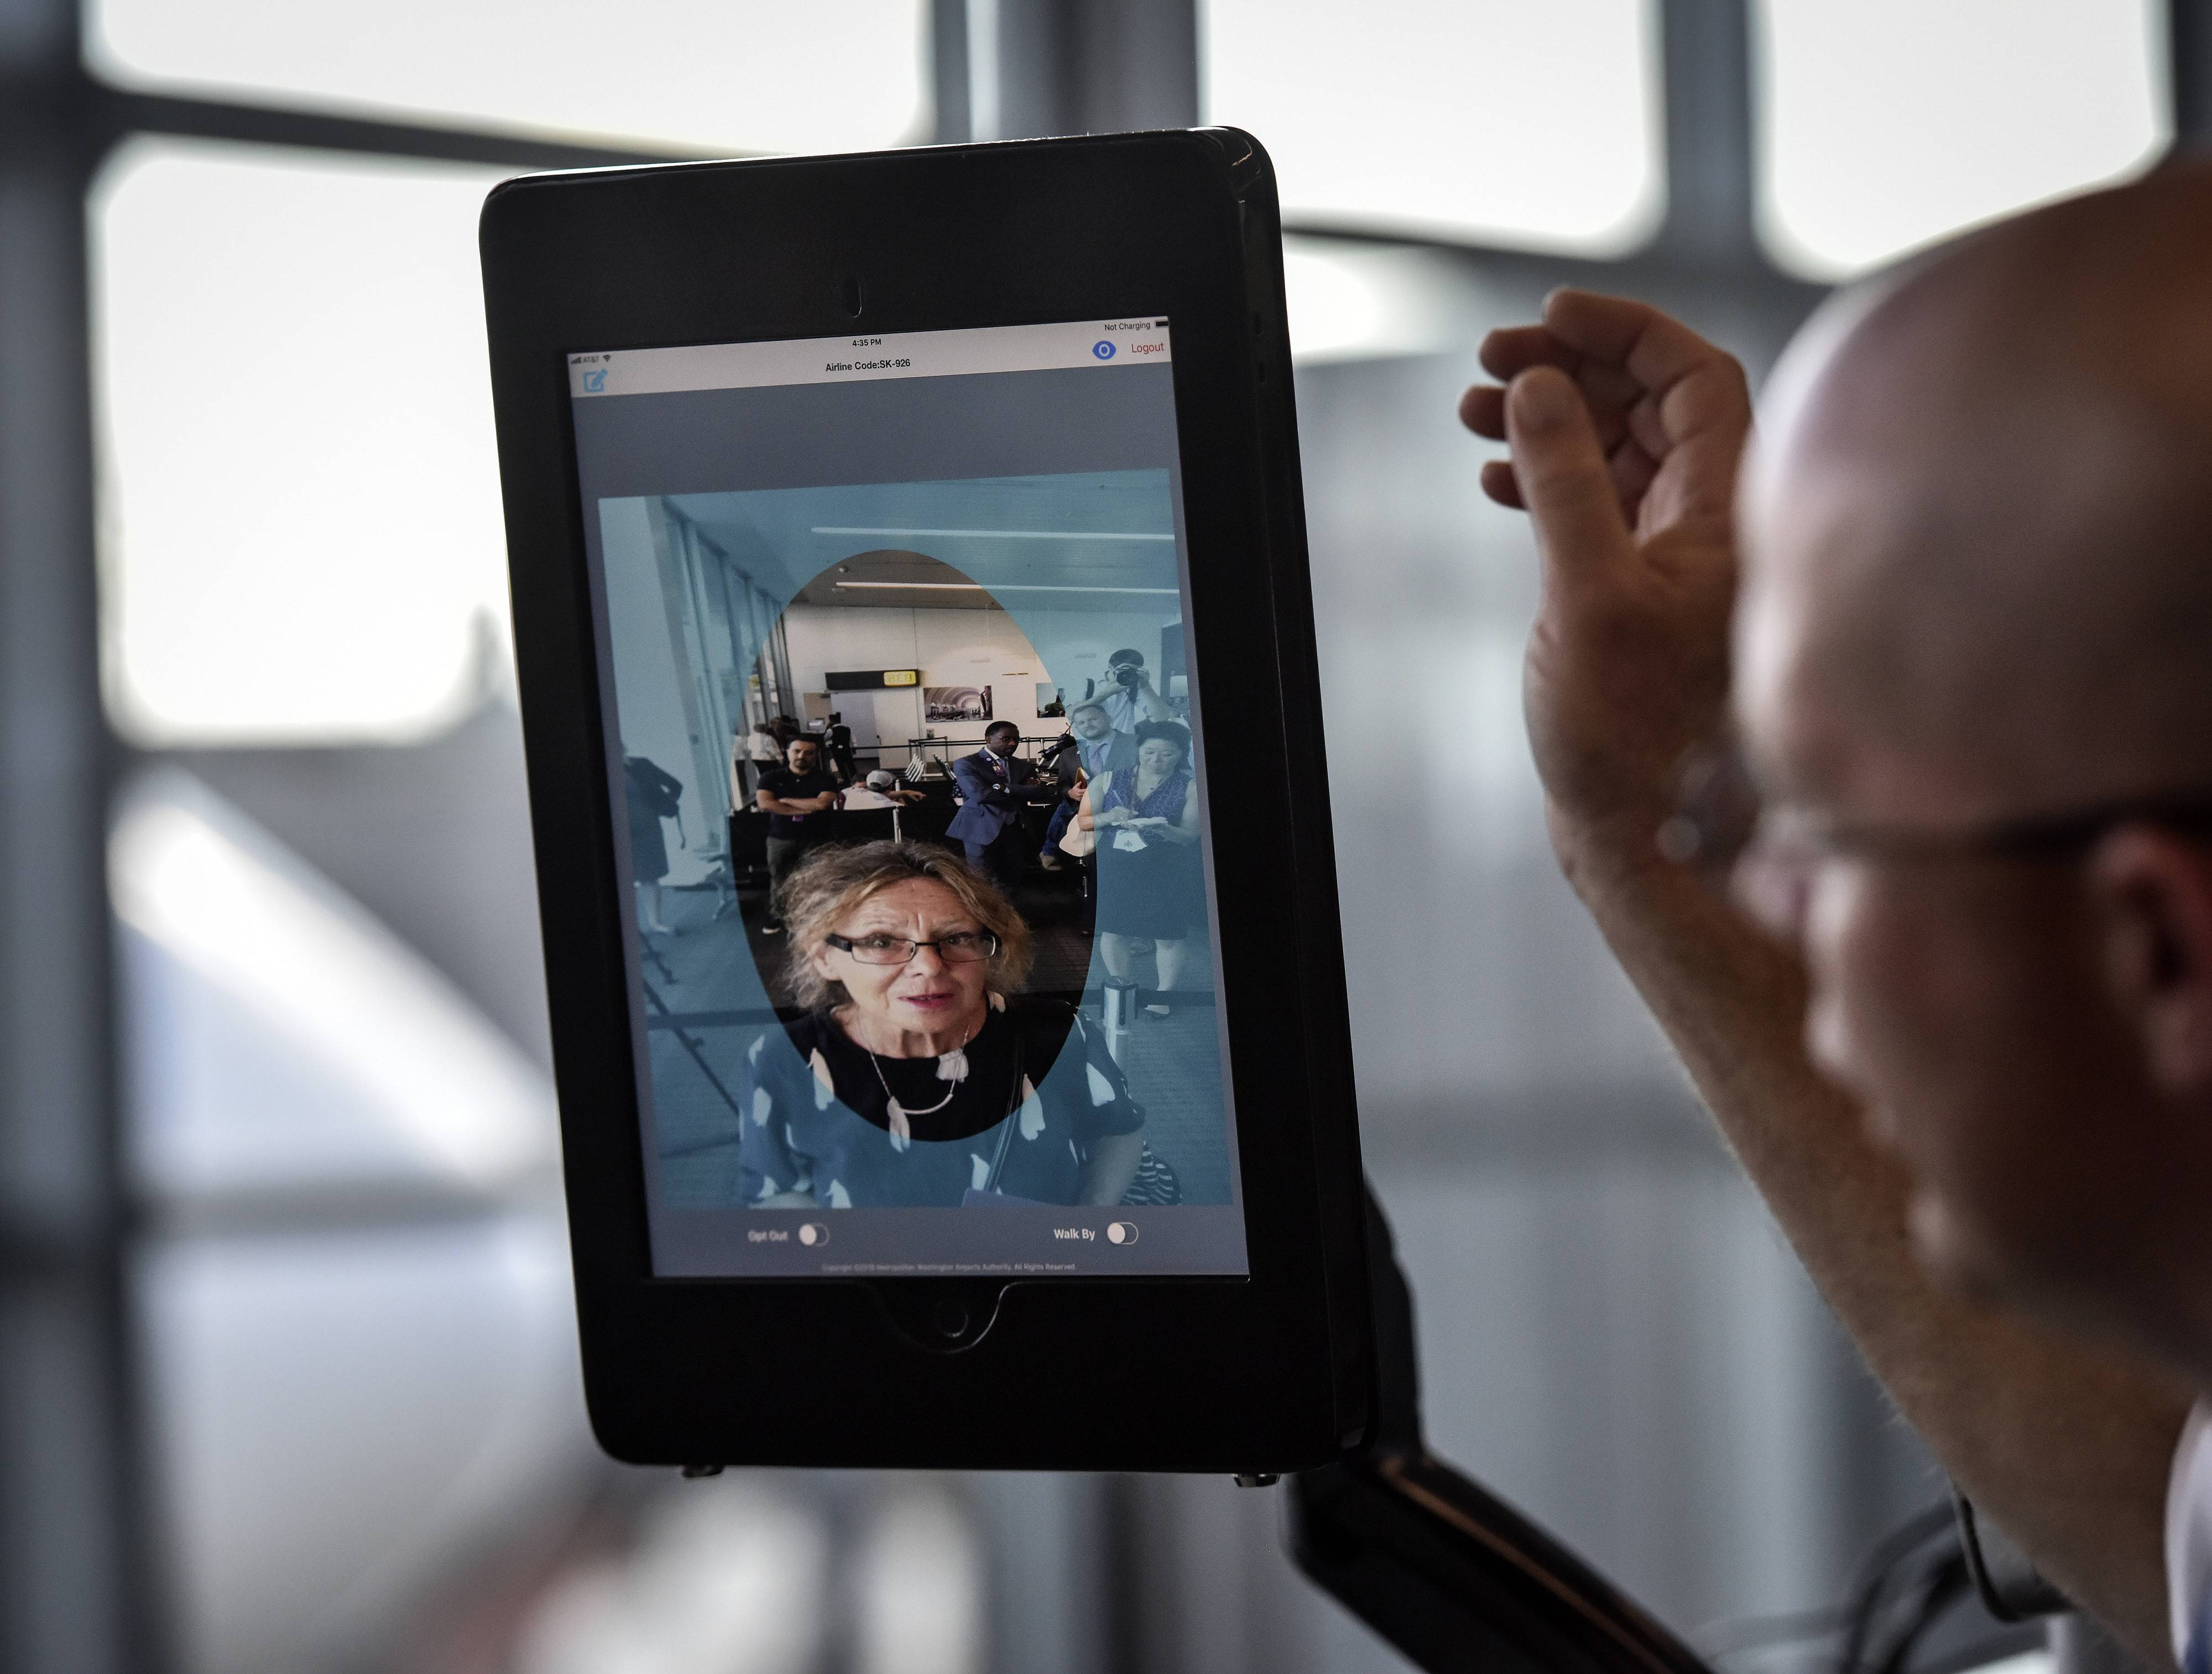 Station manager Chad Shane of SAS Airlines takes a traveler through the scanning process at Dulles International Airport. The facial scans can be compared with stored passport and visa photos.